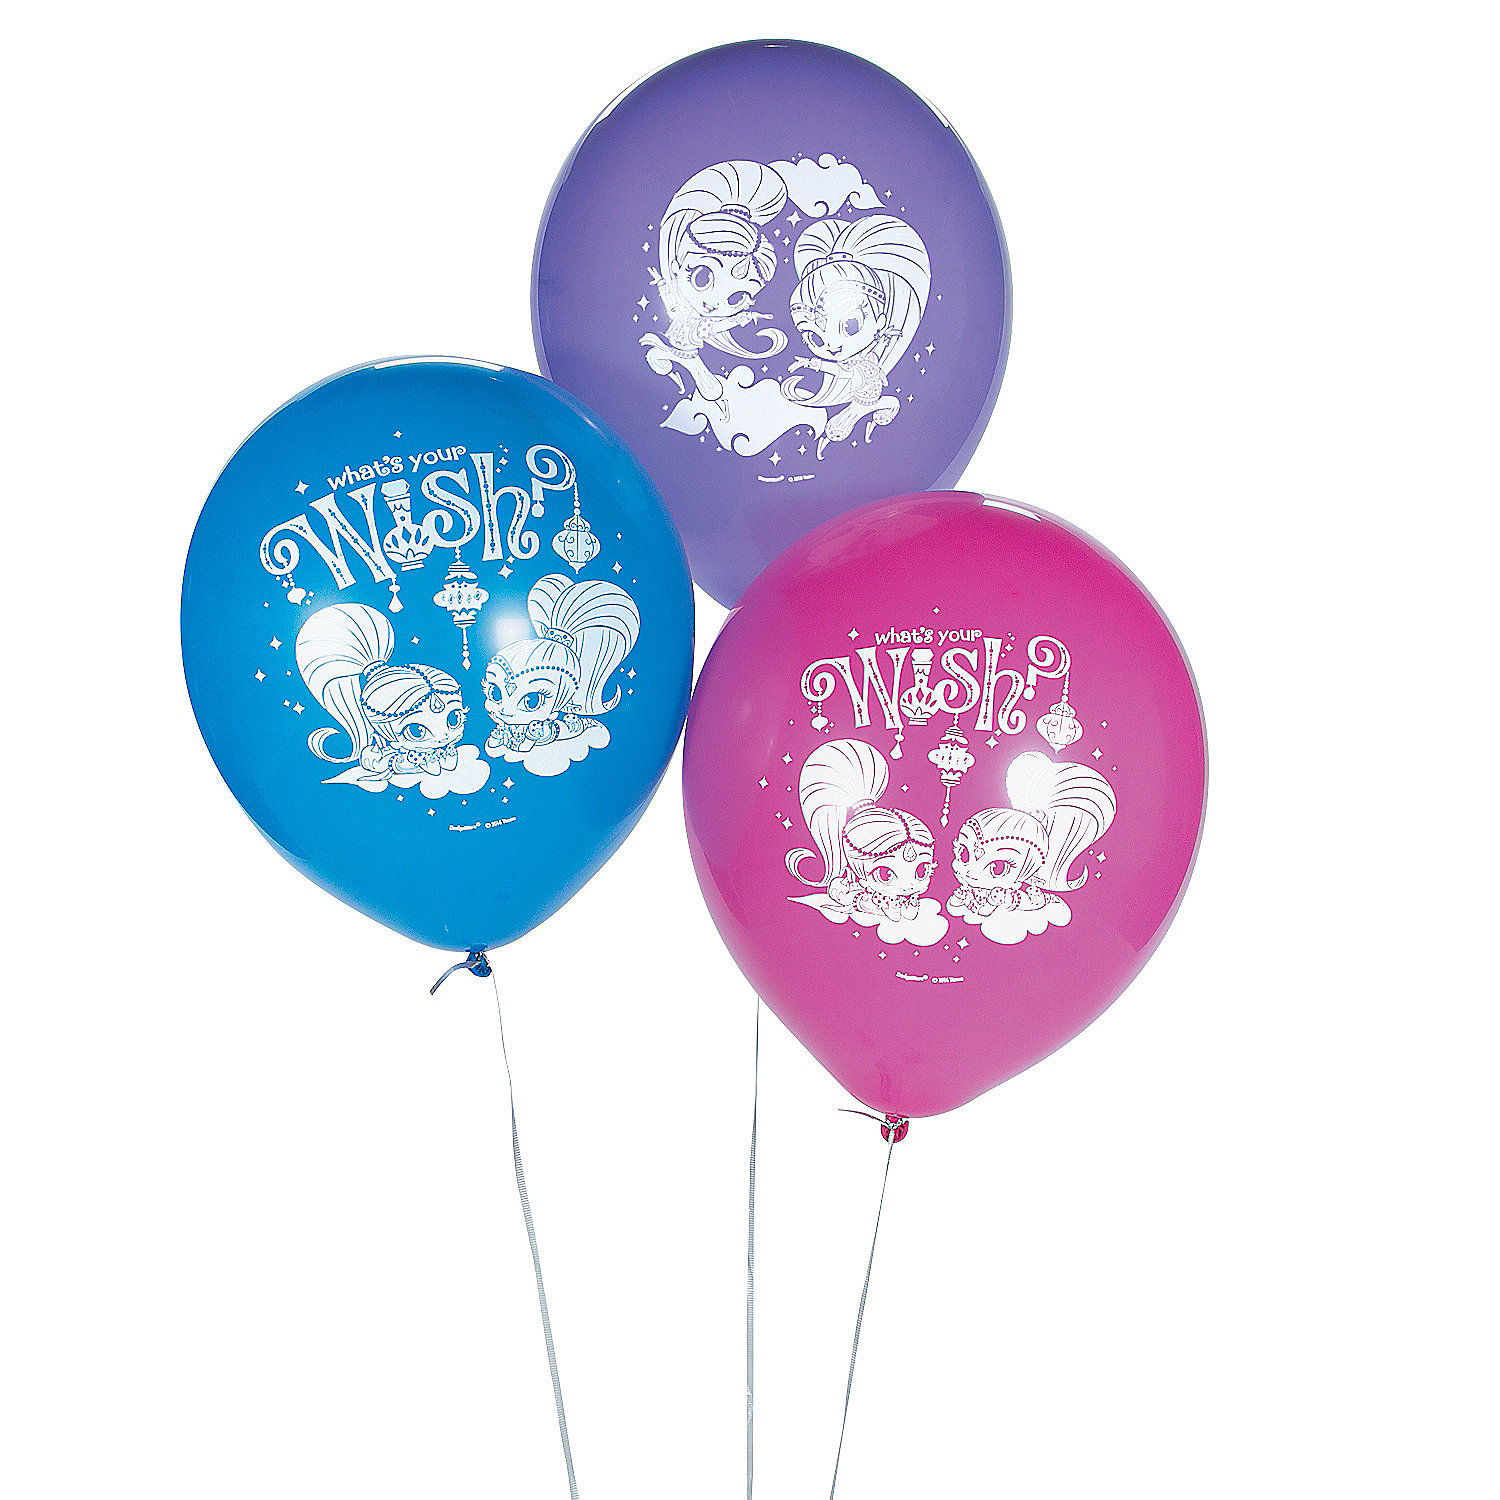 IN-13778021 Nickelodeon Shimmer & Shine 12 Latex Balloons 6 Piece(s) 2PK